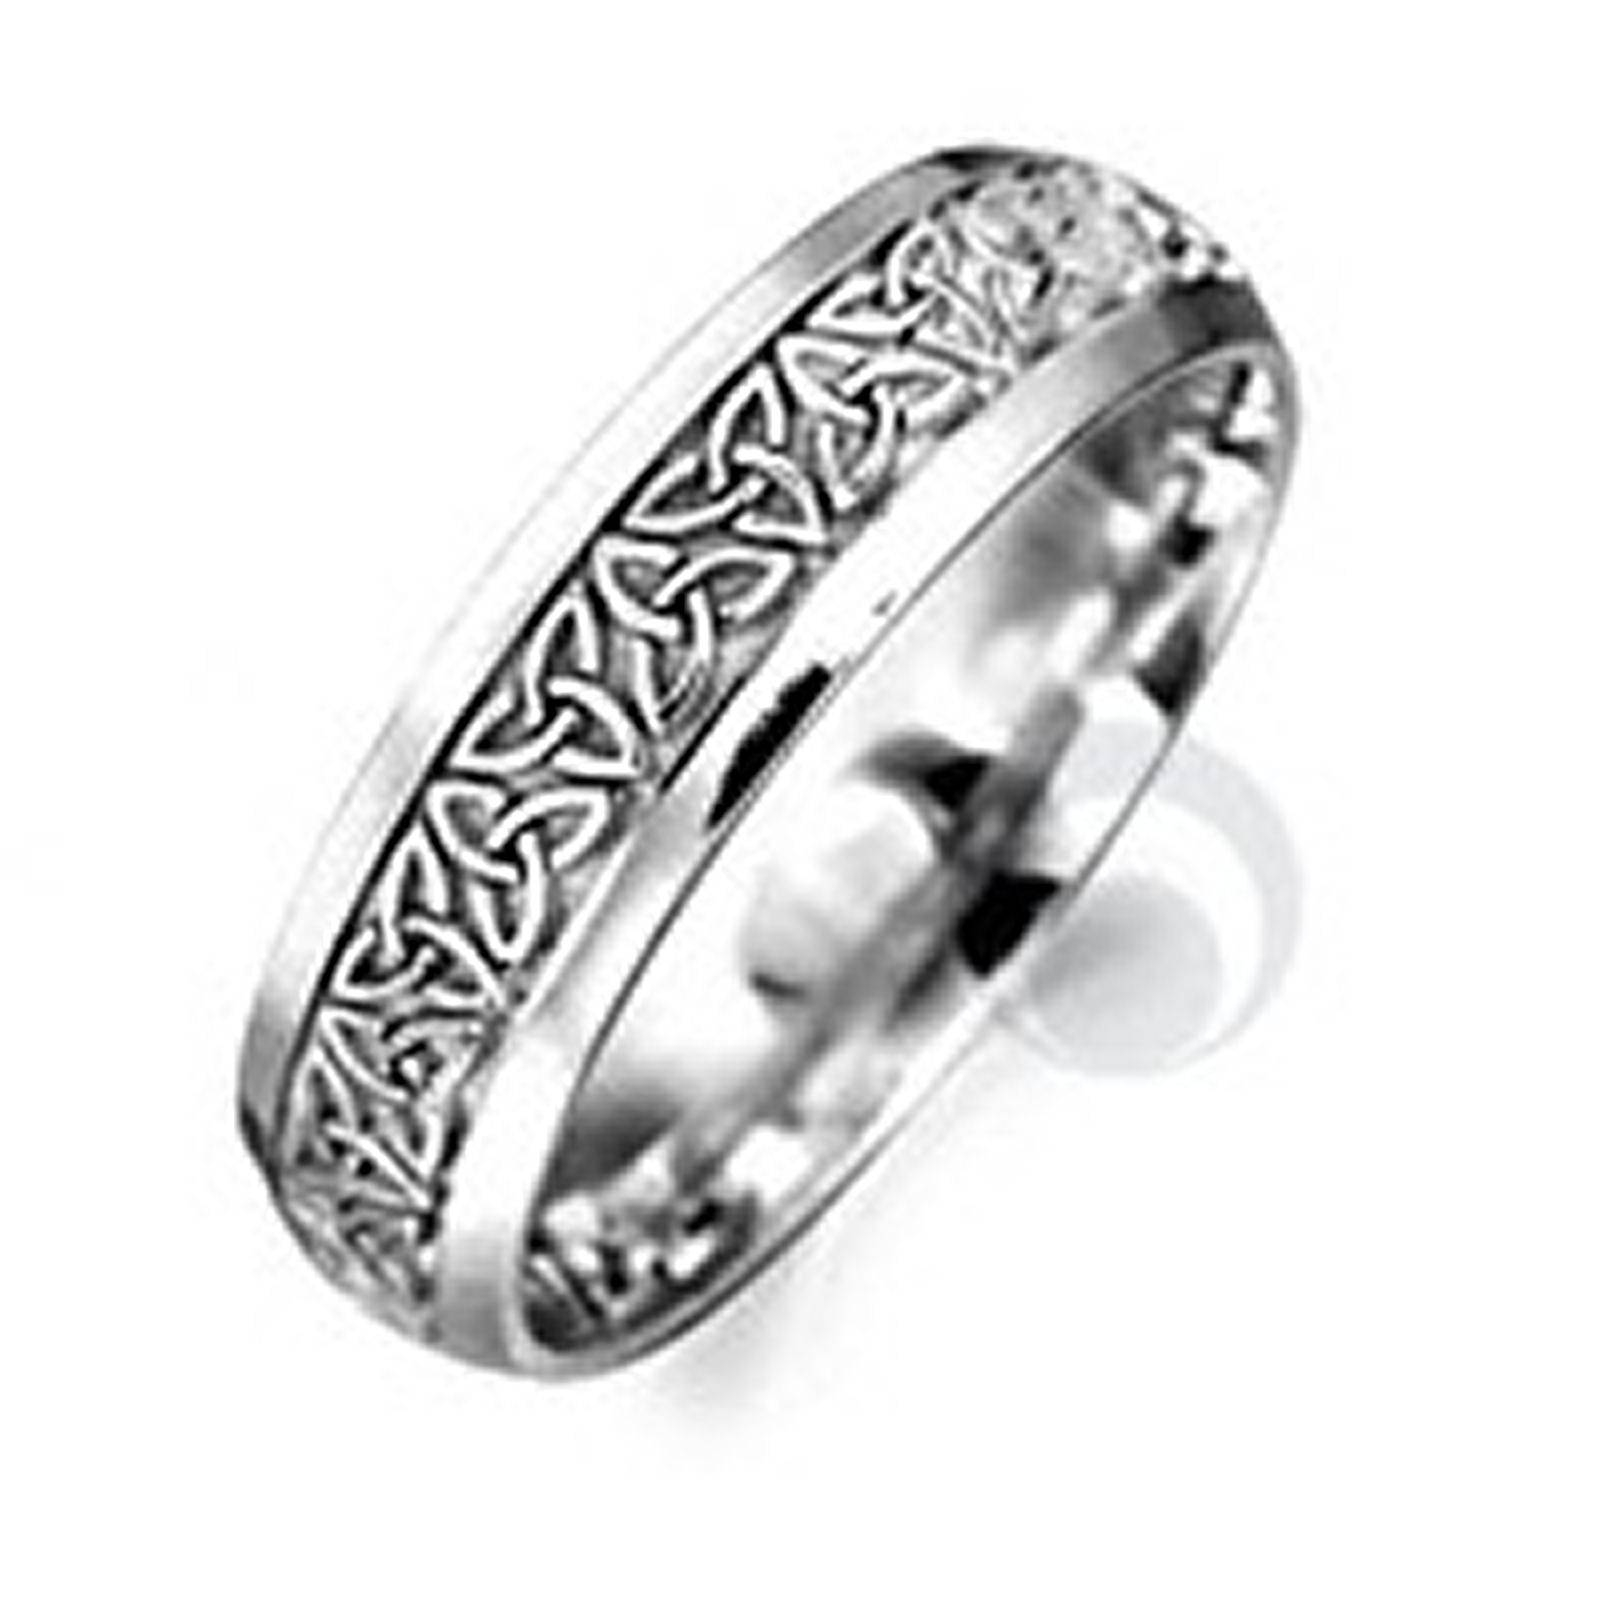 rings celtic engagement knot trinity bangle dancing stone gaelic